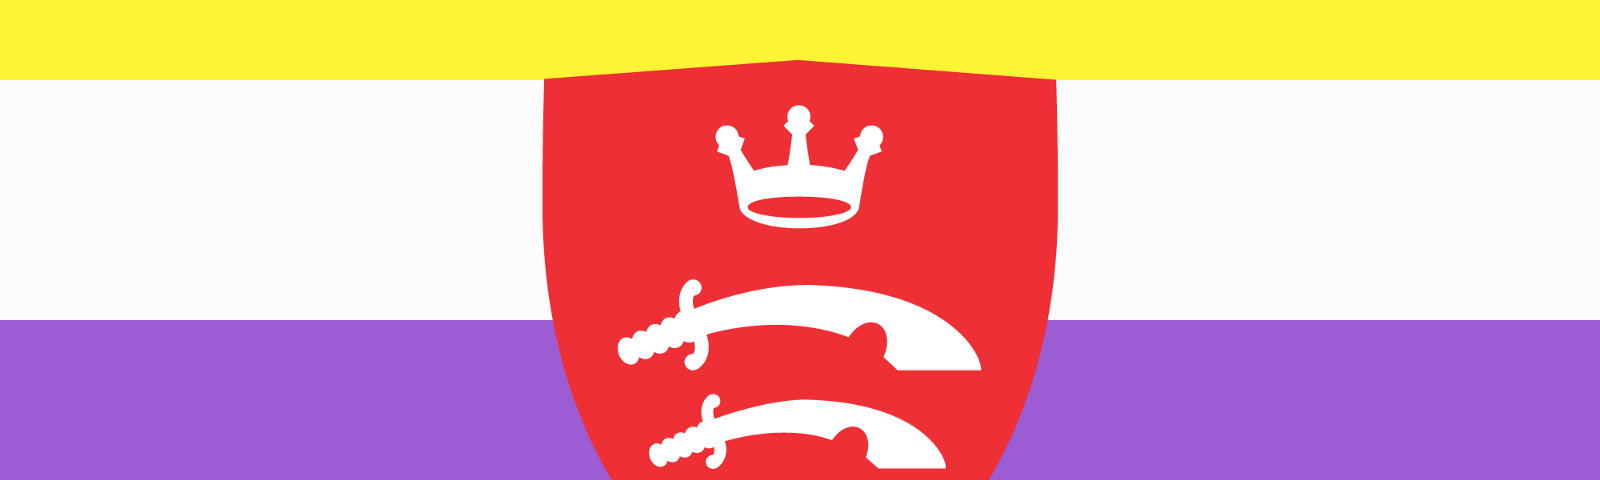 Non-binary flag with the Middlesex University shield